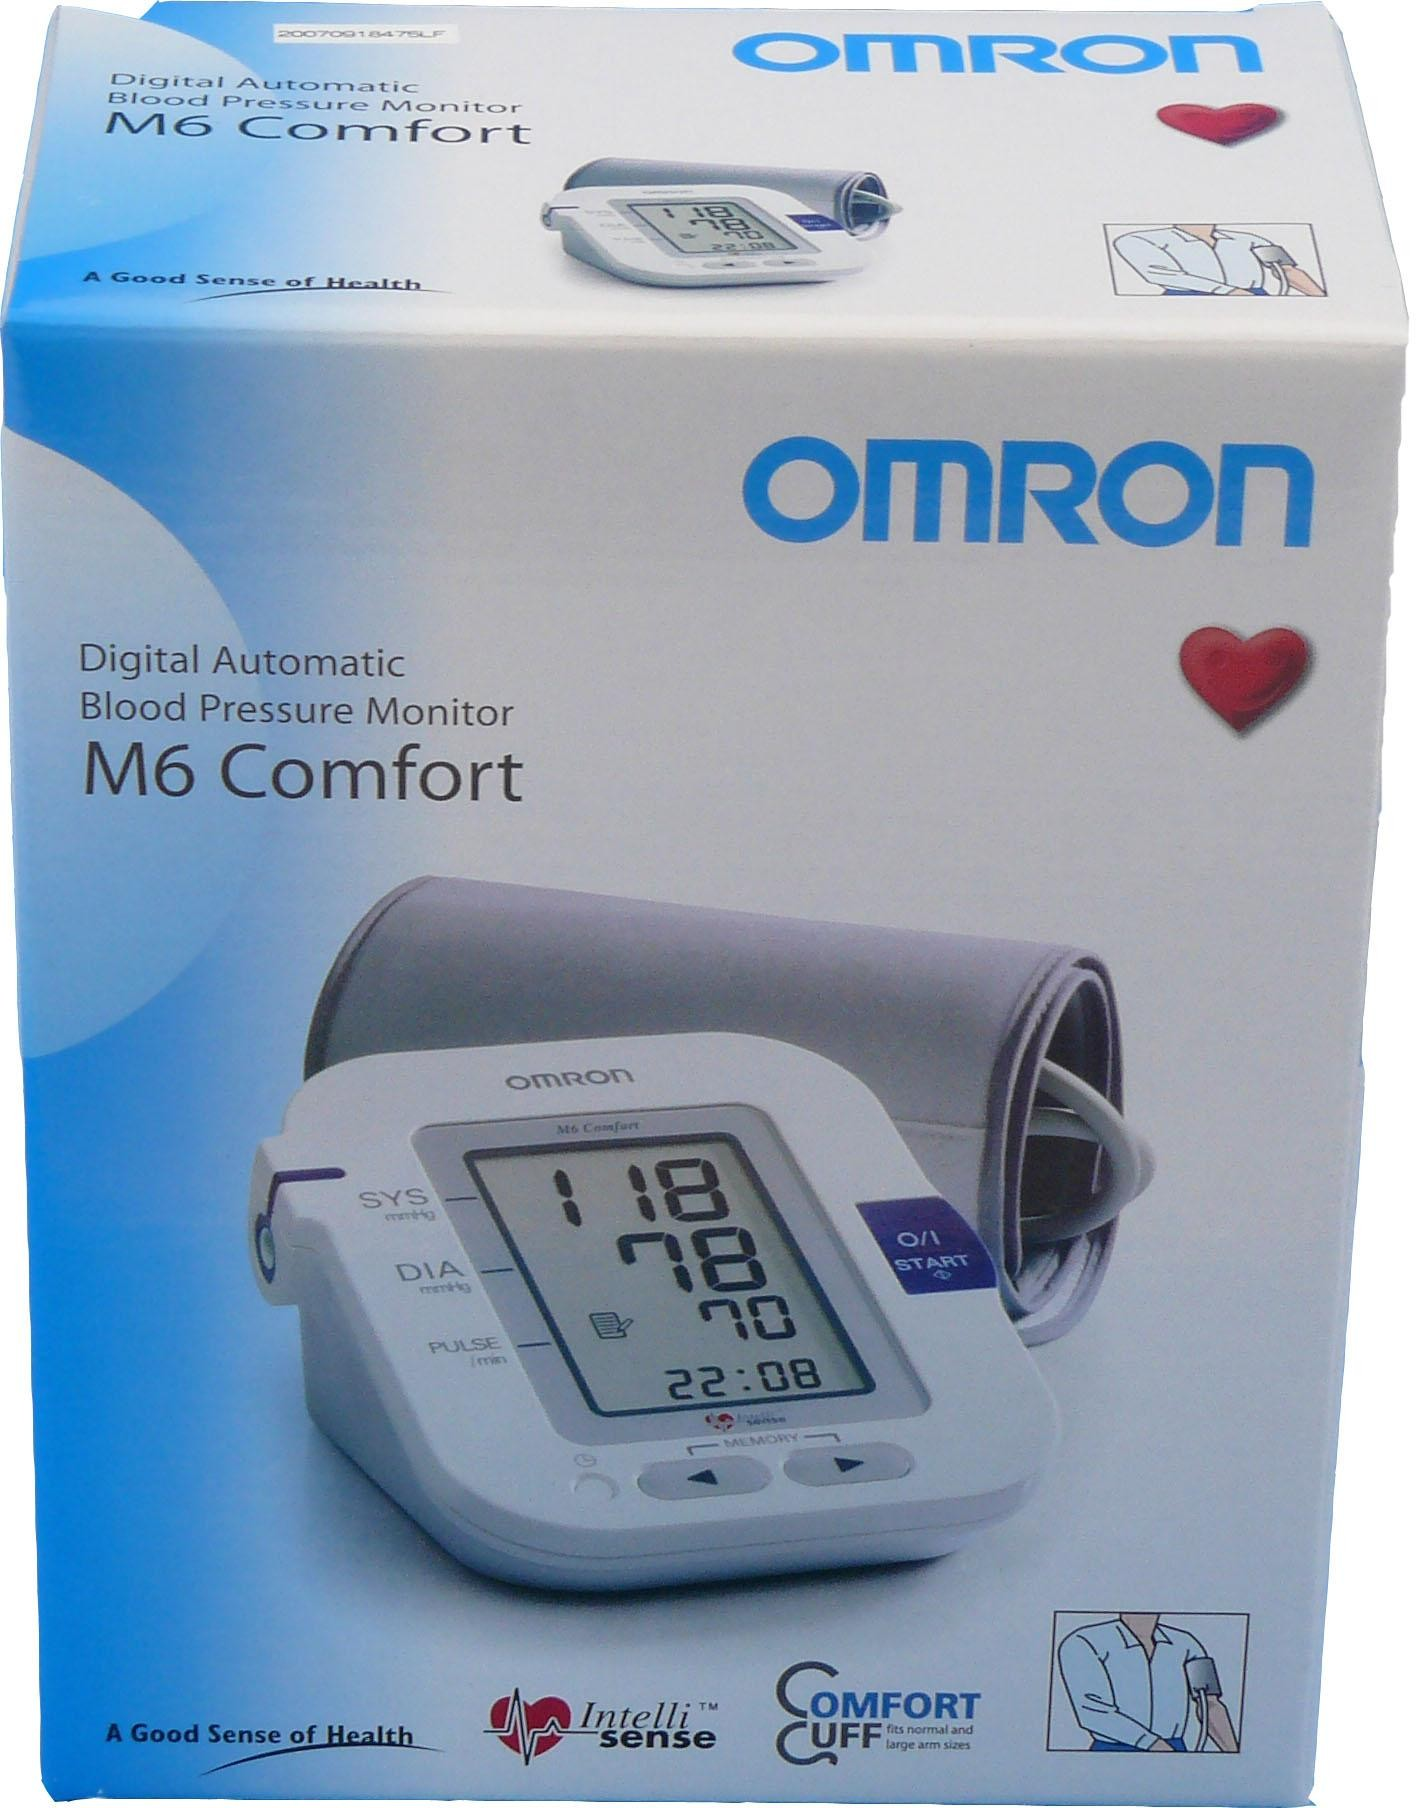 omron hem 7221 e8 blood pressure monitor m6 comfort upper arm personal digital sustuu. Black Bedroom Furniture Sets. Home Design Ideas